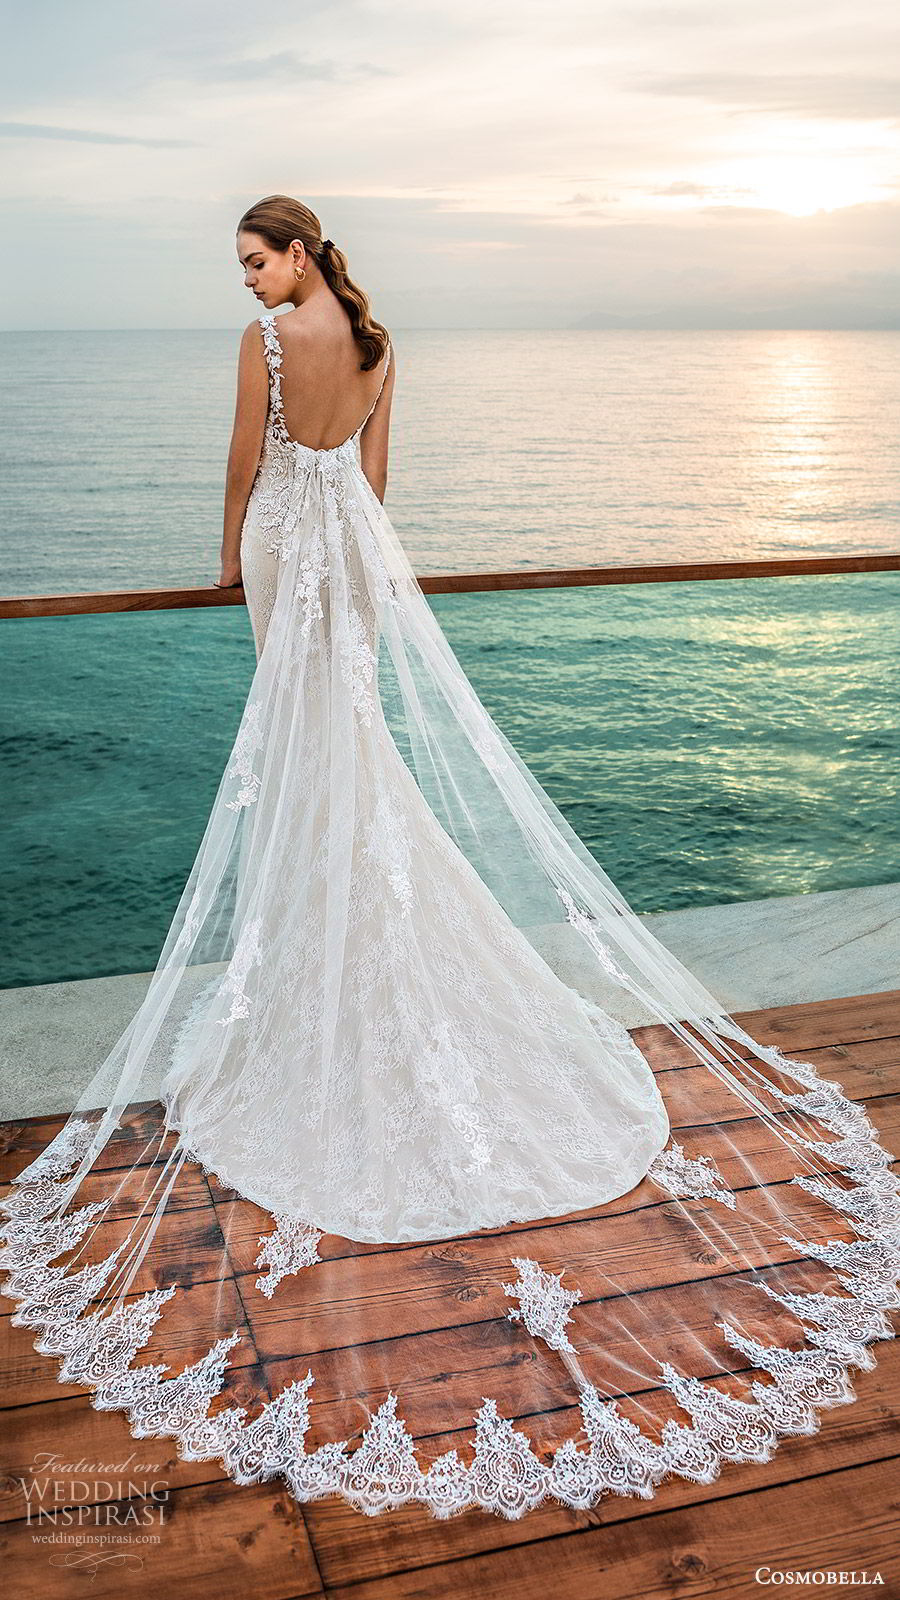 cosmobella 2020 bridal sleeveless illusion bateau neckline sweetheart fully embellished lace sheath wedding dress (7) elegant romantic low back watteau chapel train bv